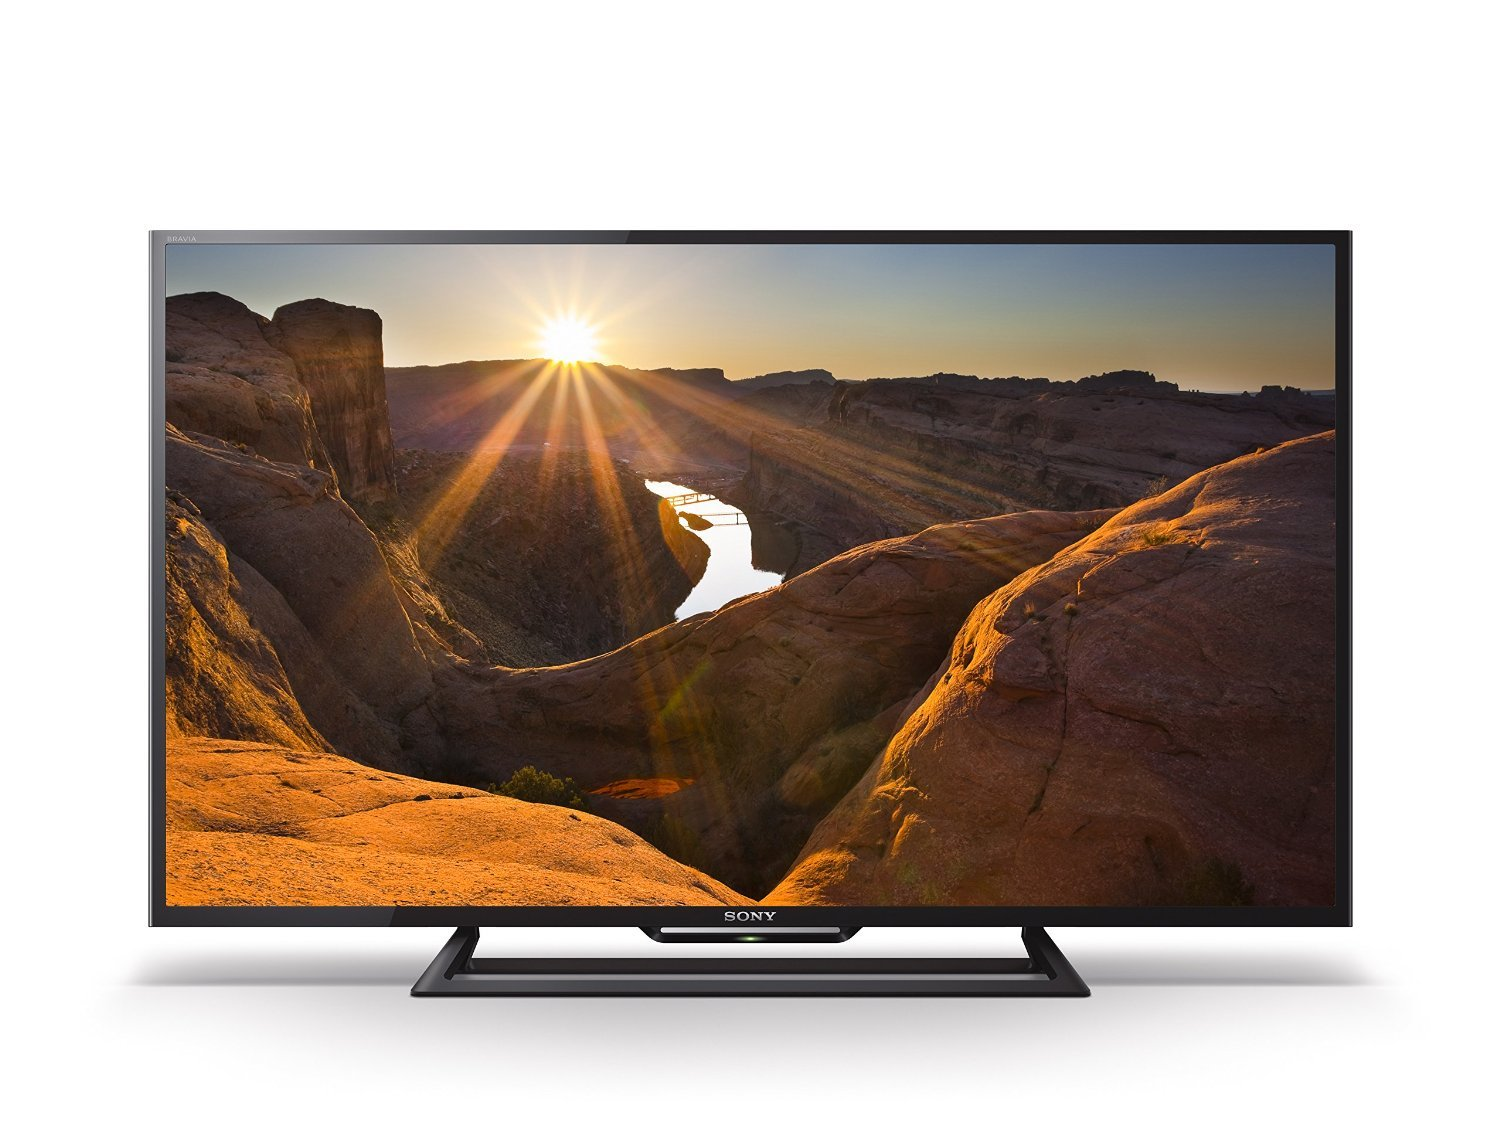 Sony KDL40R510C 40-Inch 1080p 60Hz Smart LED TV (Certified Refurbished)